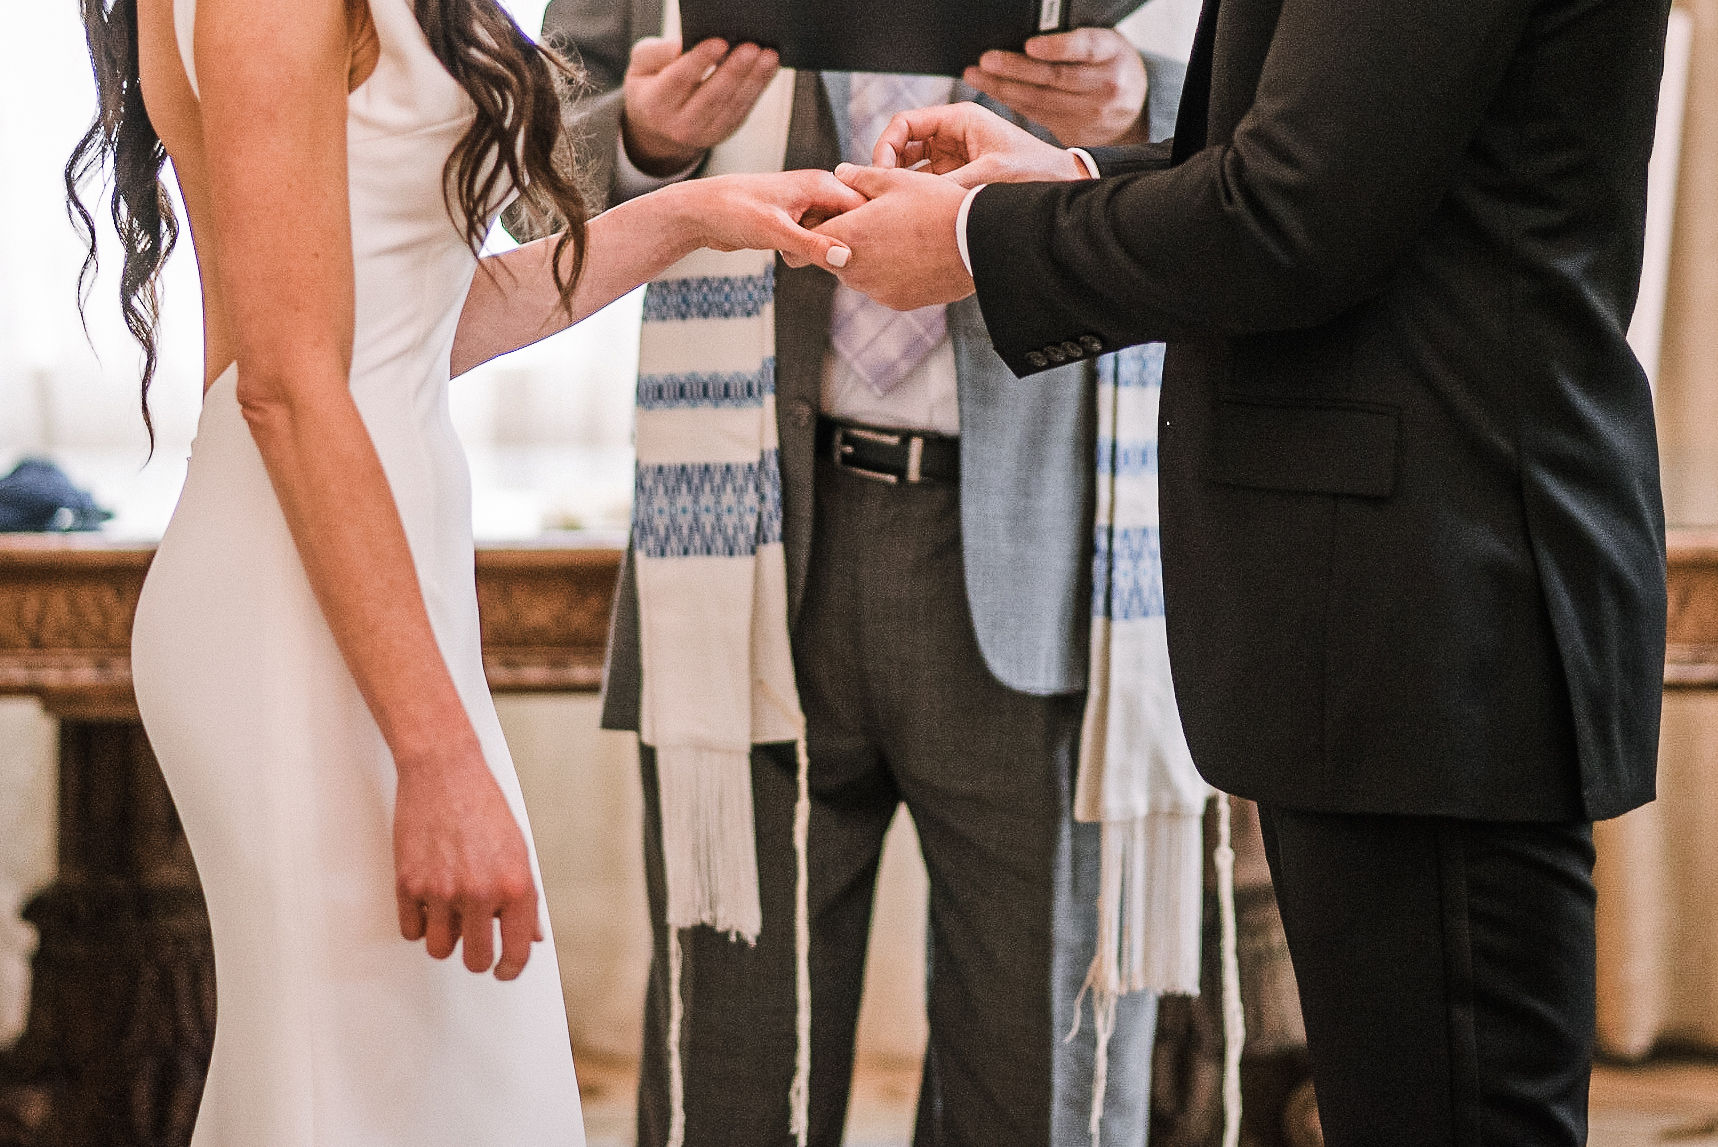 groom putting wedding ring on bride's finger at The Salamander Resort